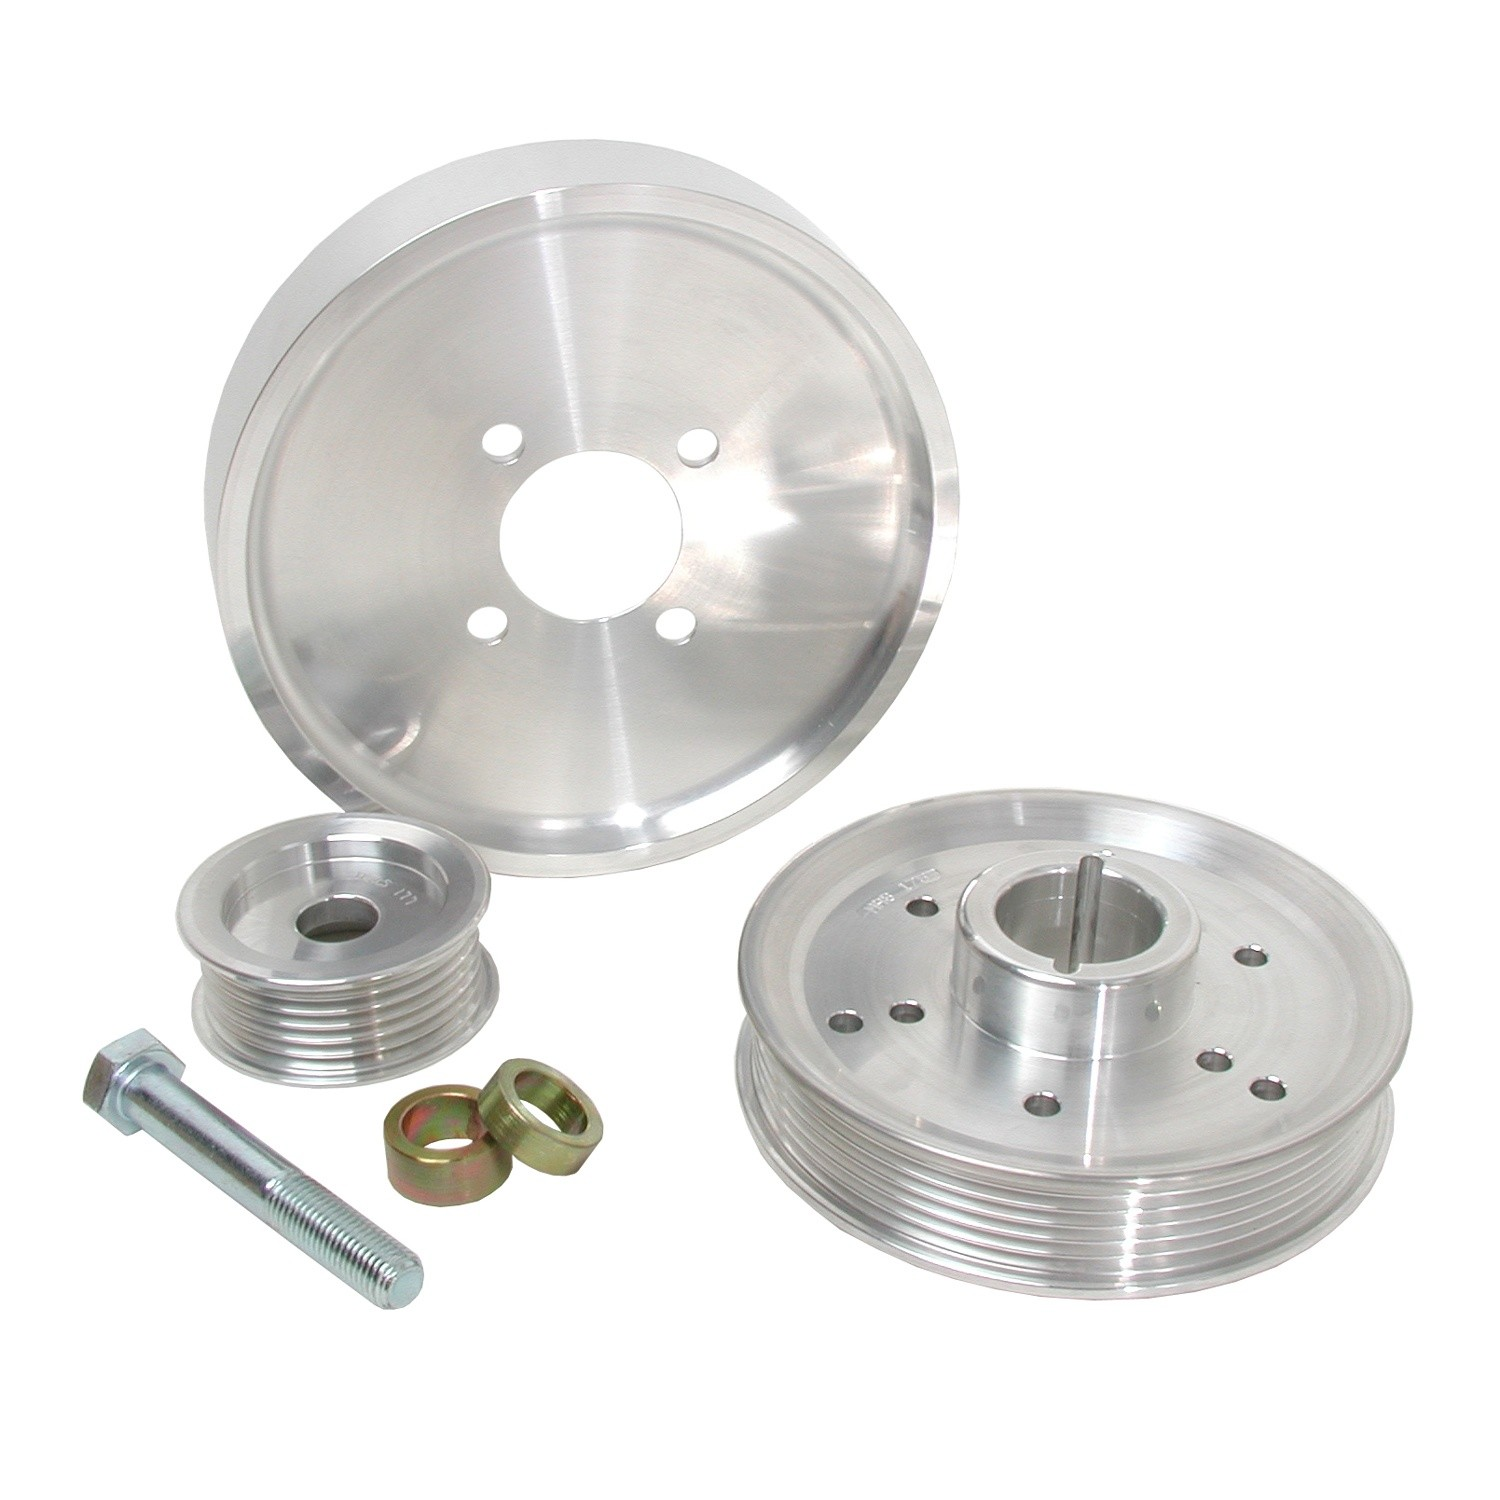 BBK PERFORMANCE PARTS - Power-Plus Series Underdrive Pulley System - XCV 1559